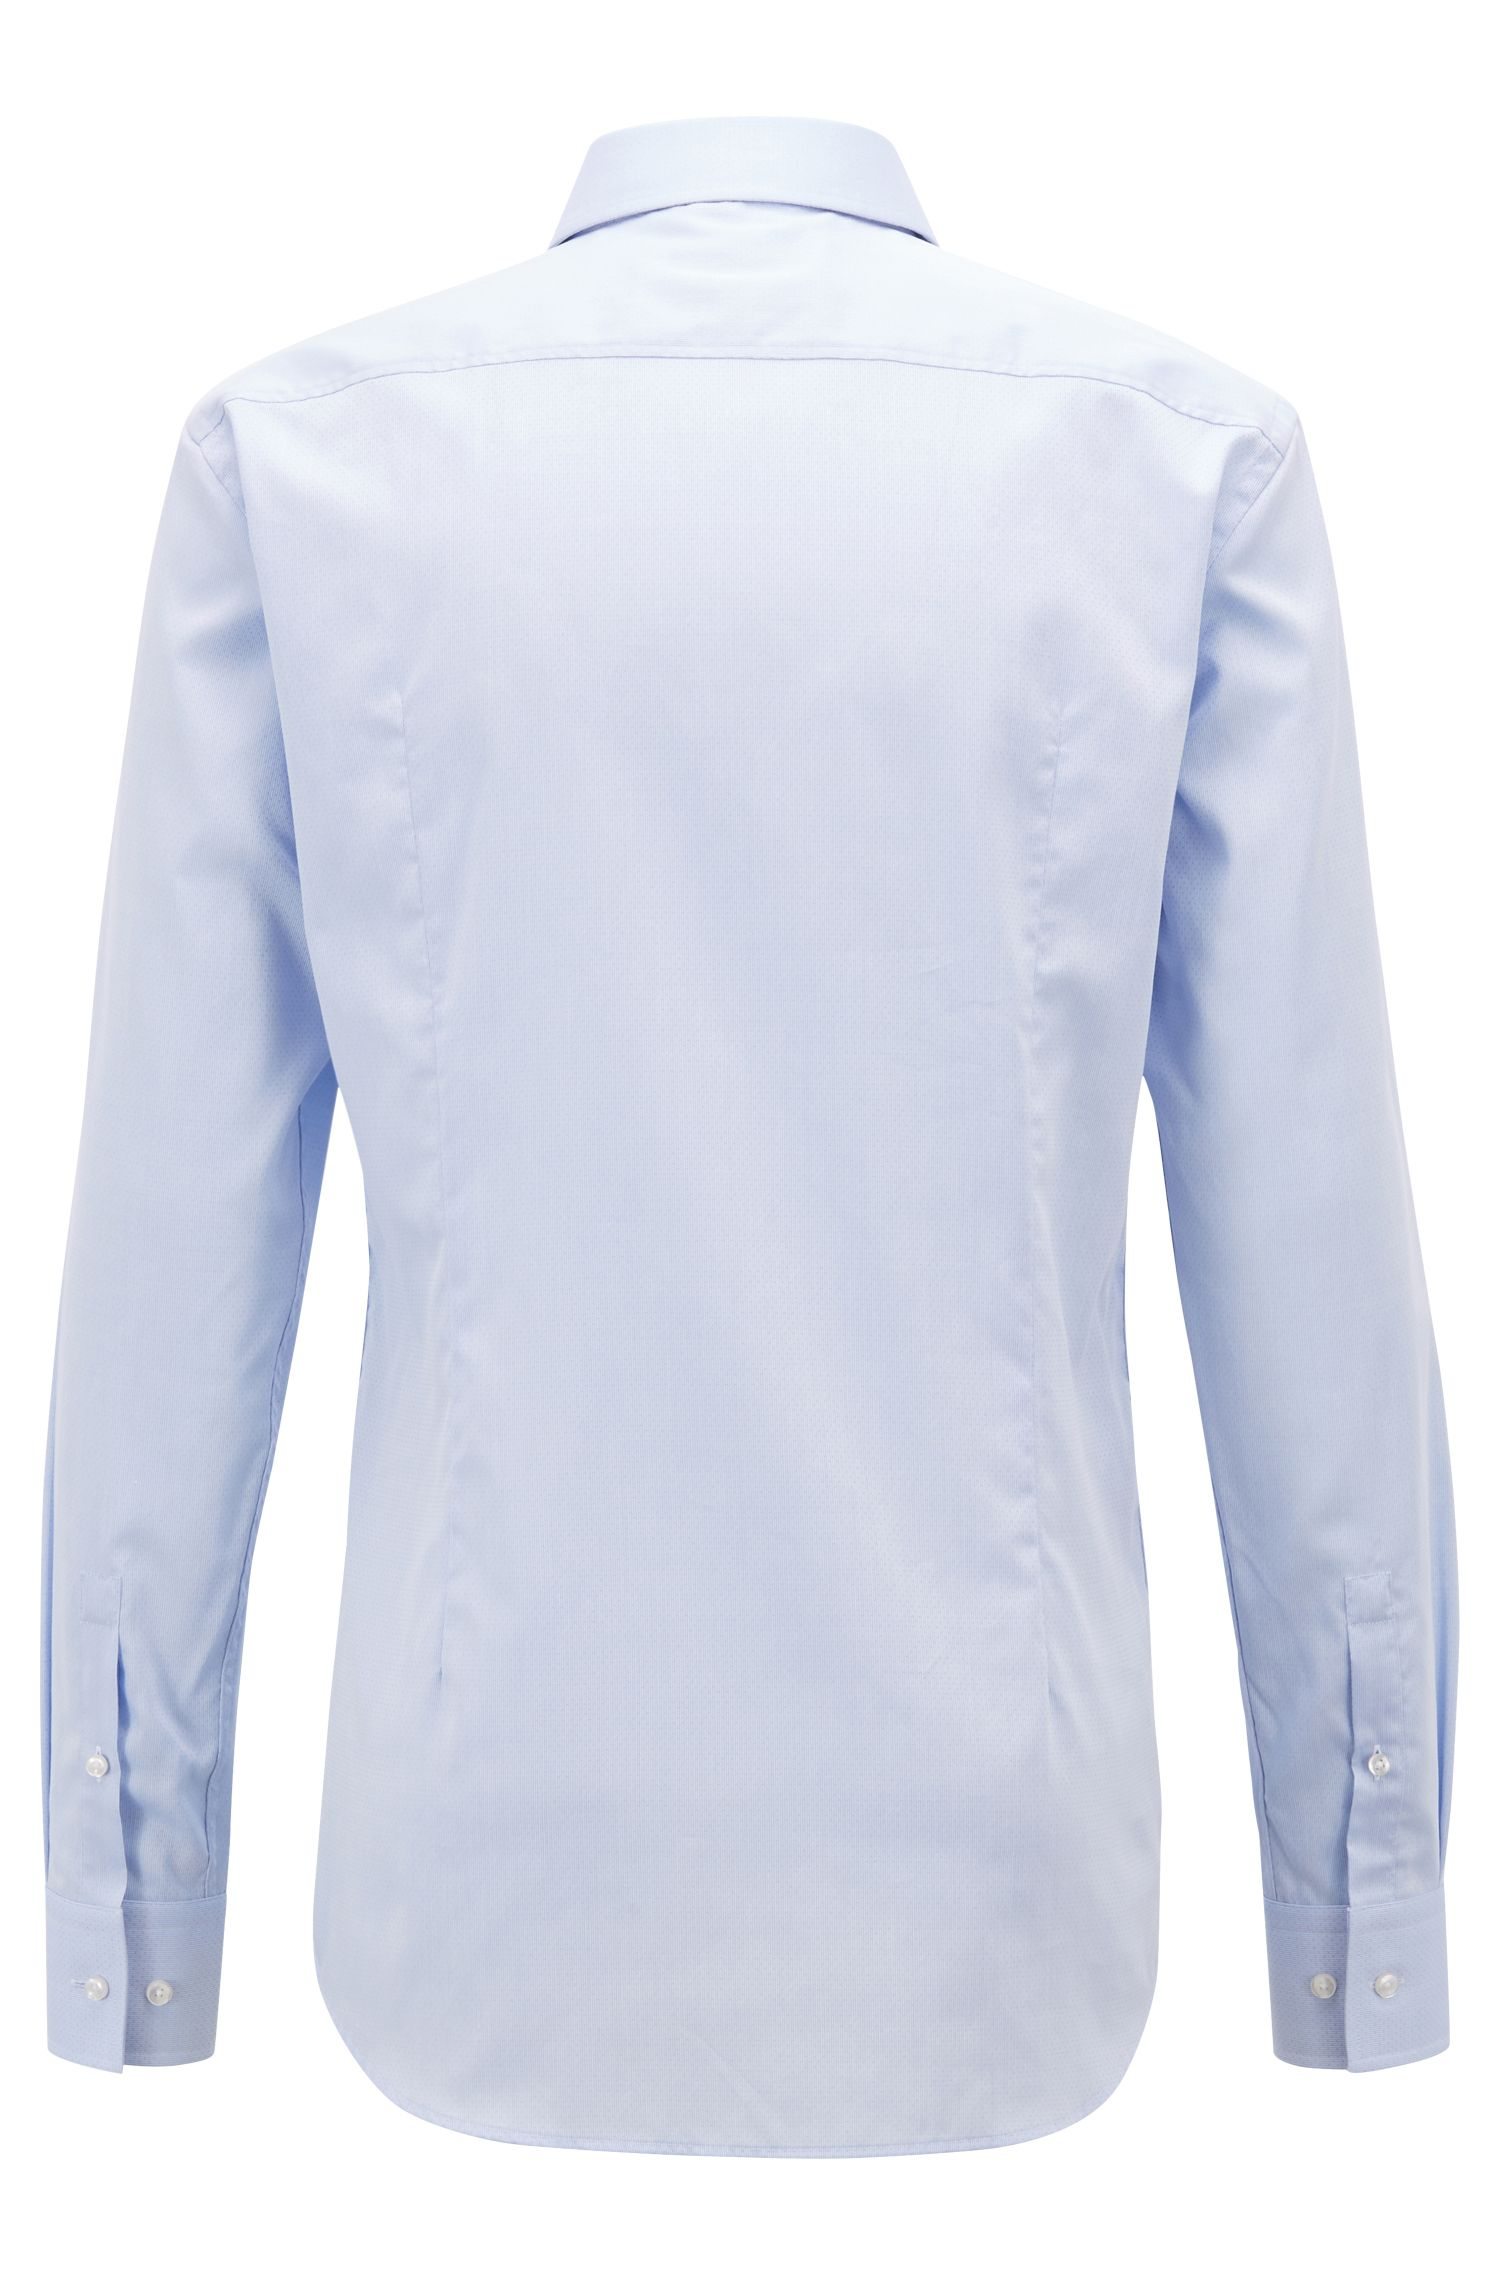 Swiss cotton slim-fit shirt with Coolest Comfort finishing, Light Blue